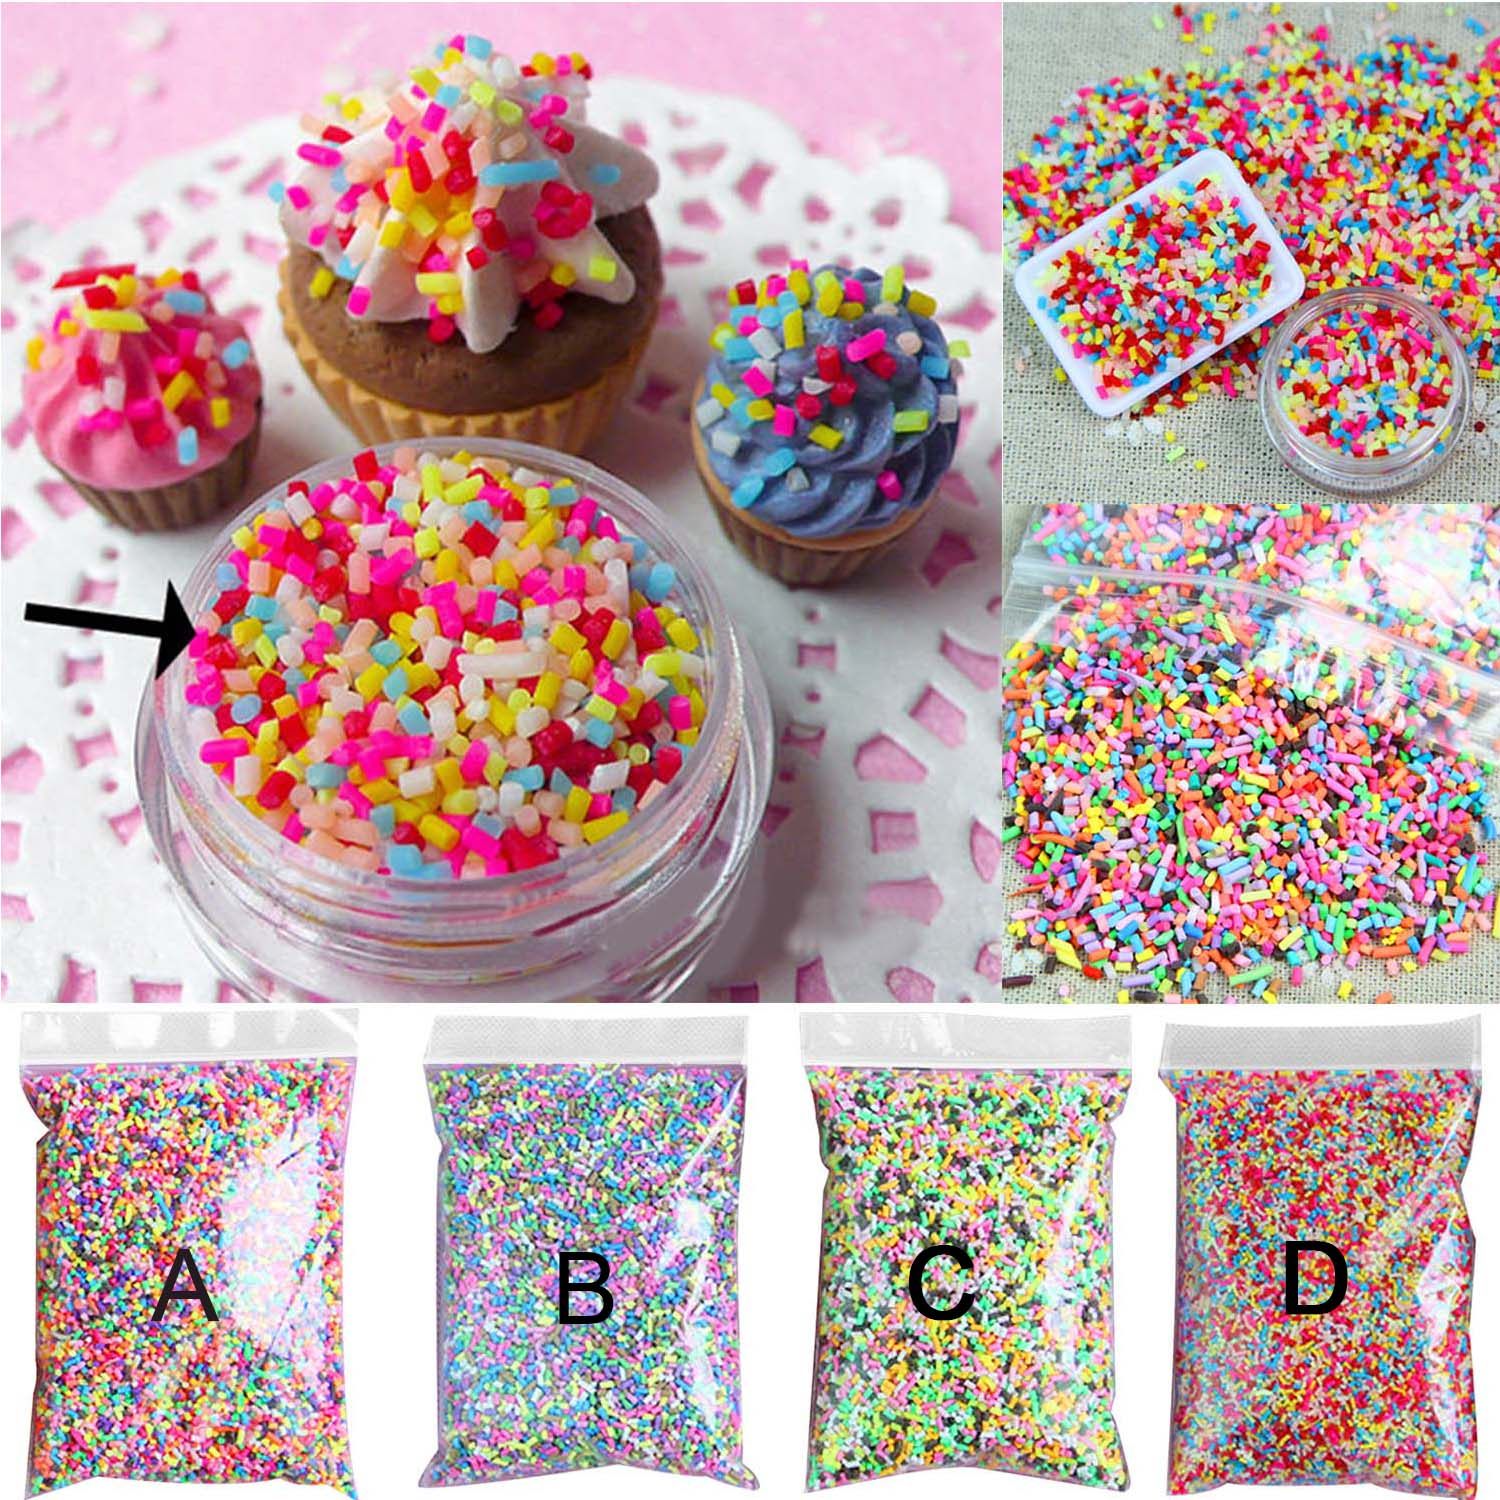 100g DIY Polymer Clay Decor Craft Toy Colorful Fake Candy Sprinkles Decorfor Fake Cake Dessert Children Diy Kawaii Accessories